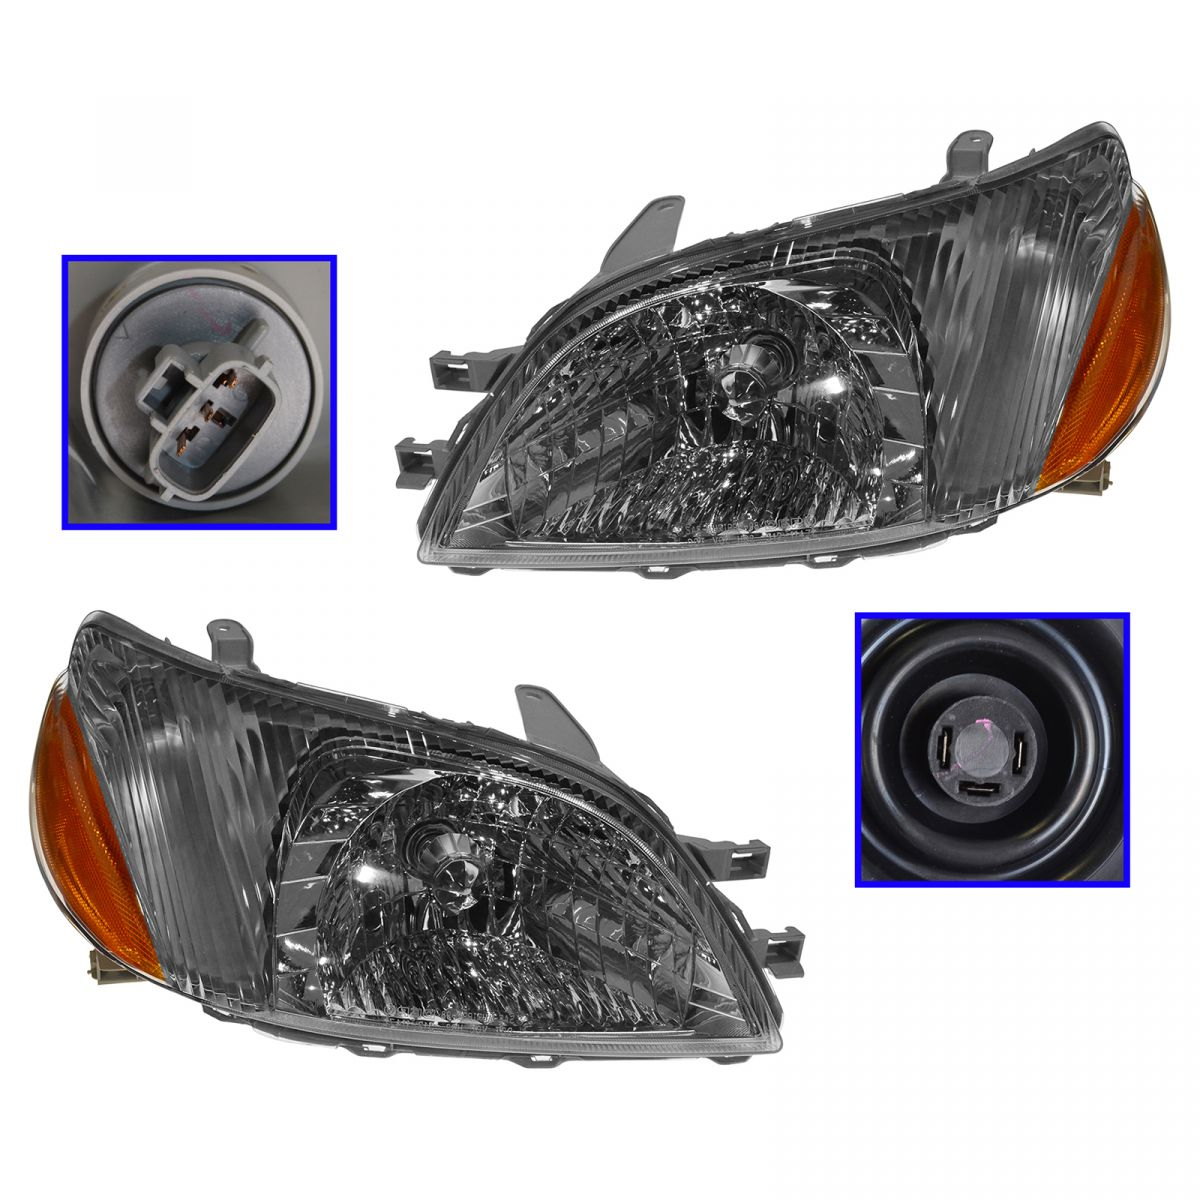 Headlights Headlamps Left /& Right Pair Set NEW for 2000-2001 Mitsubishi Eclipse